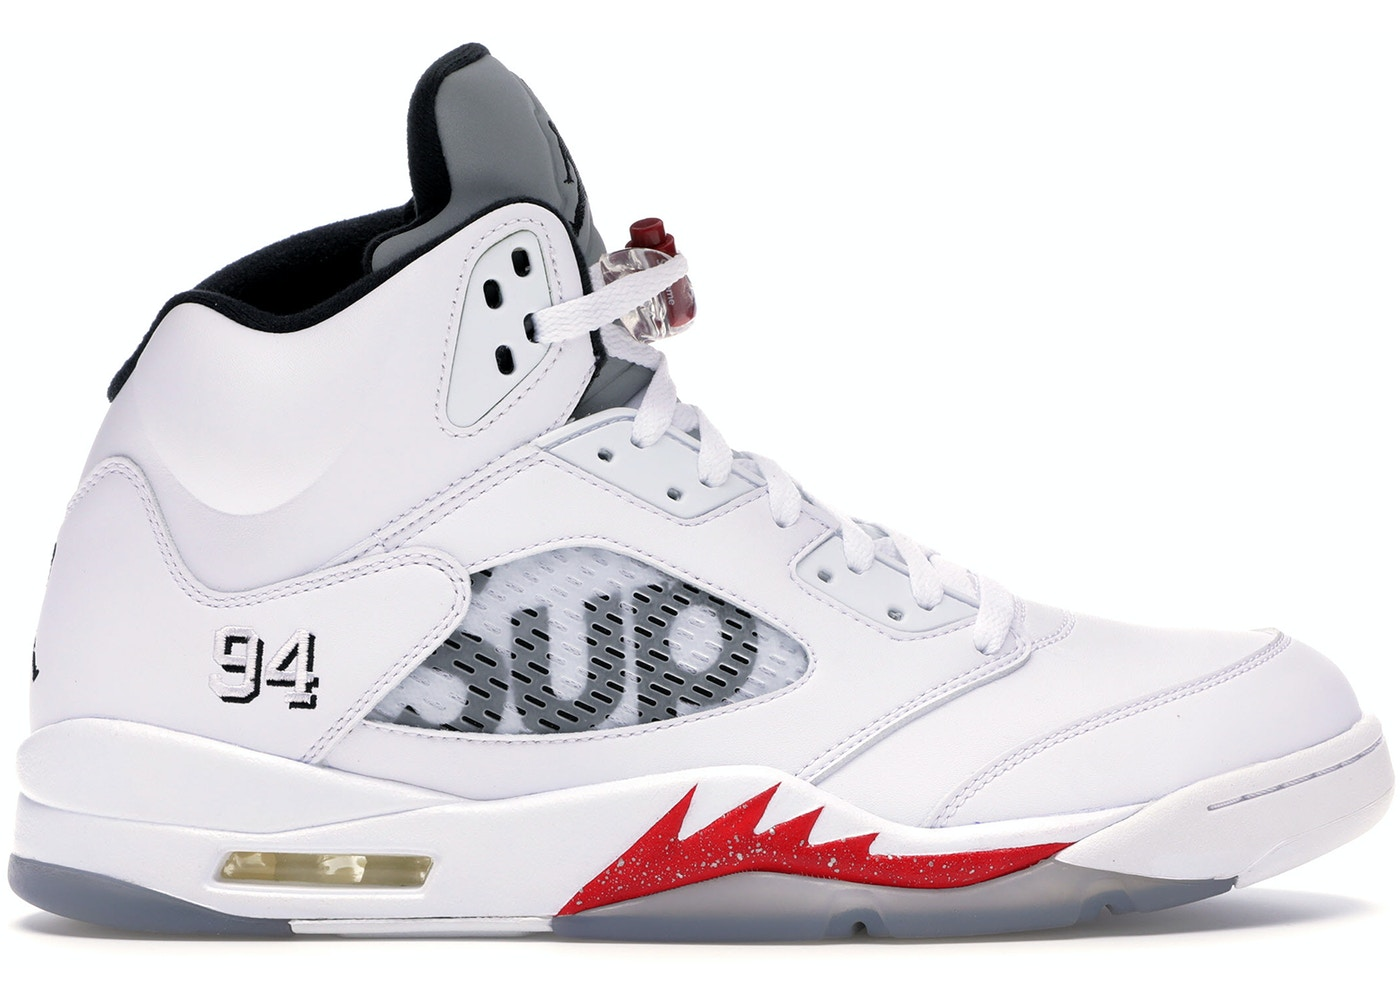 uk availability da9a8 70425 Jordan 5 Retro Supreme White - 824371-101